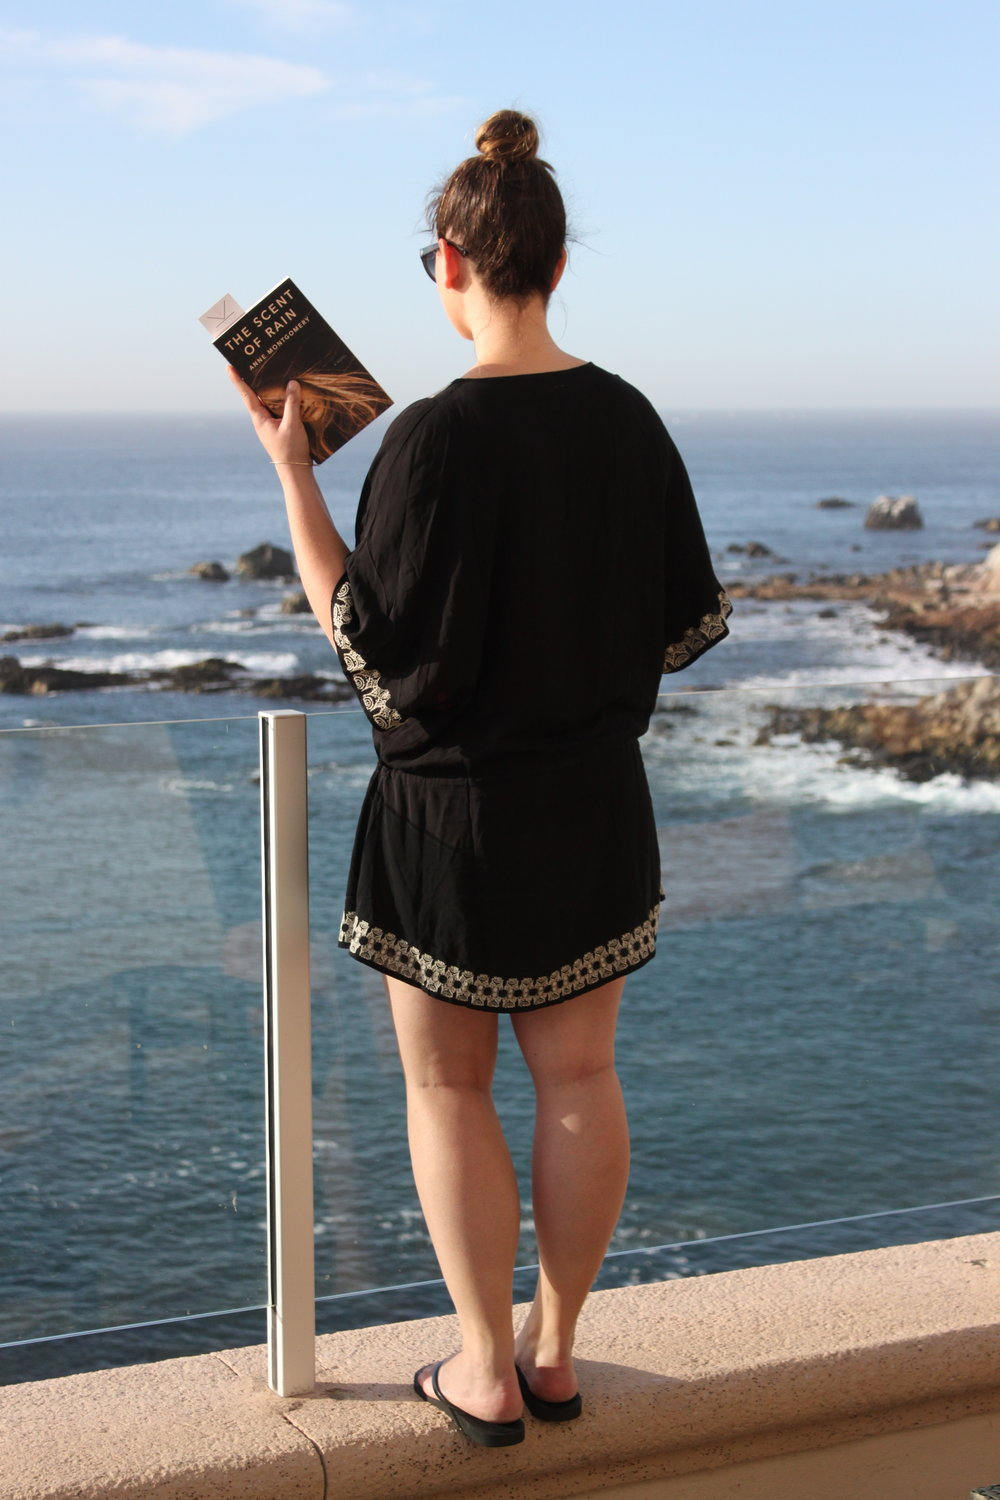 Reading The Scent of Rain by Anne Montgomery at Sirena del Mar in Cabo San Lucas, Mexico